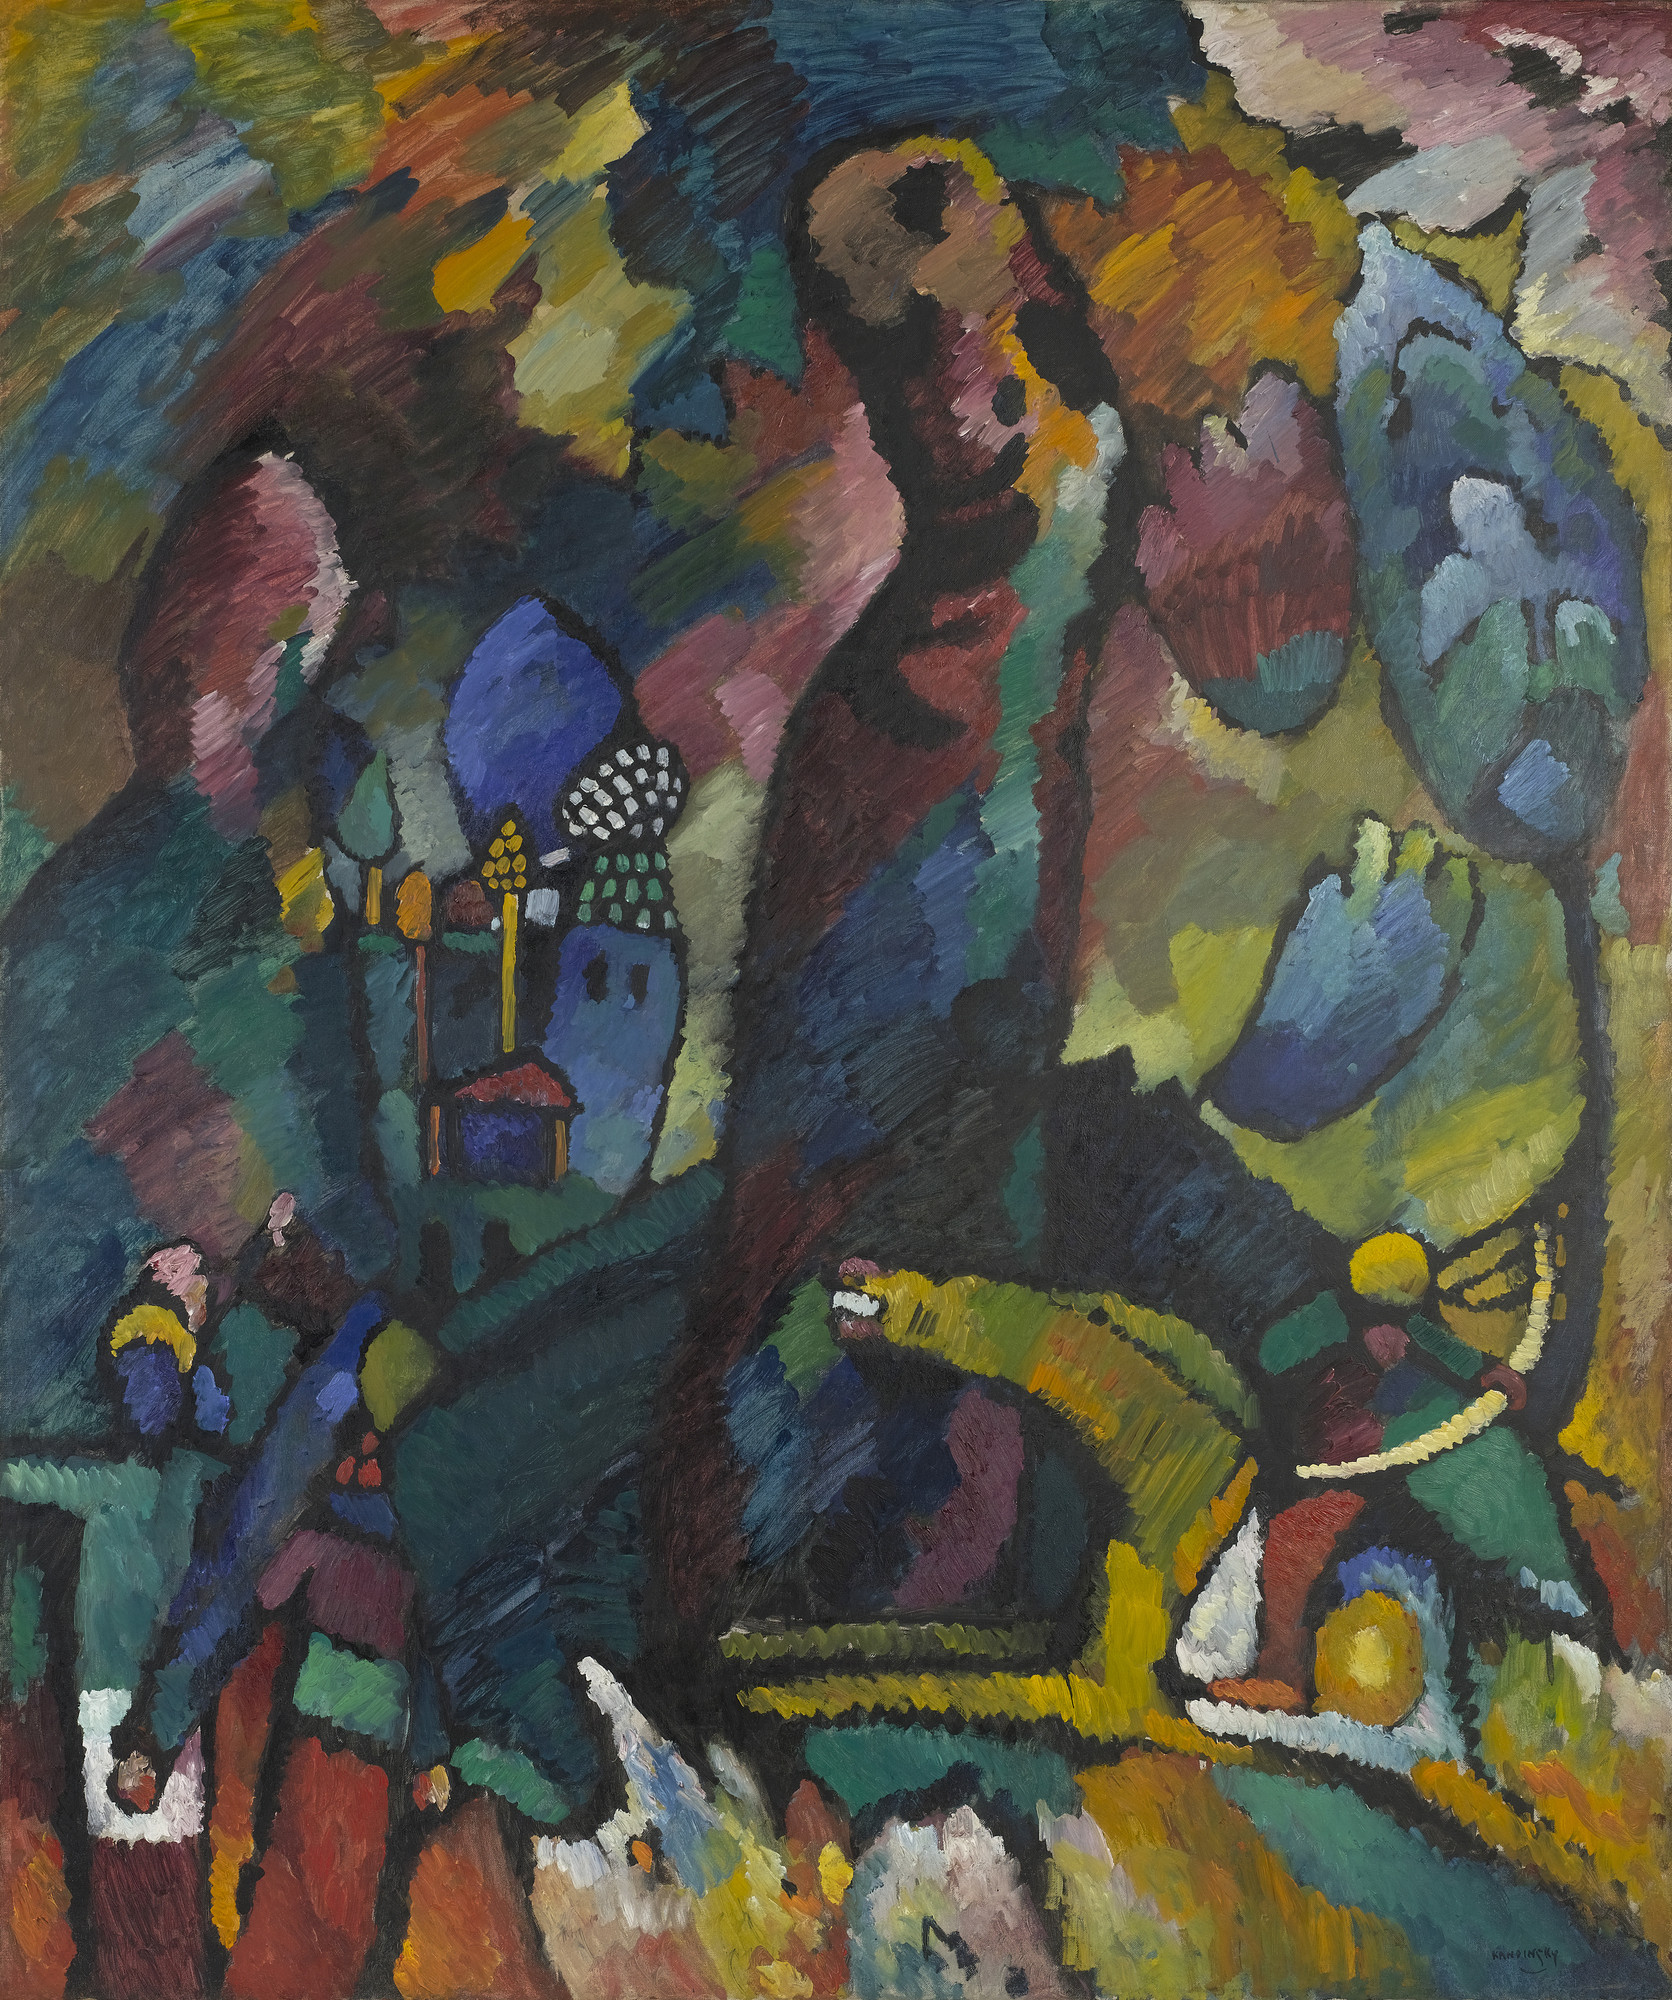 Vasily Kandinsky. Picture with an Archer. 1909. Oil on canvas, 68 7⁄8 × 57 3/8″ (175 × 144.6 cm). Gift and bequest of Louise Reinhardt Smith. © 2016 Artists Rights Society (ARS), New York / ADAGP, Paris. Photo: John Wronn